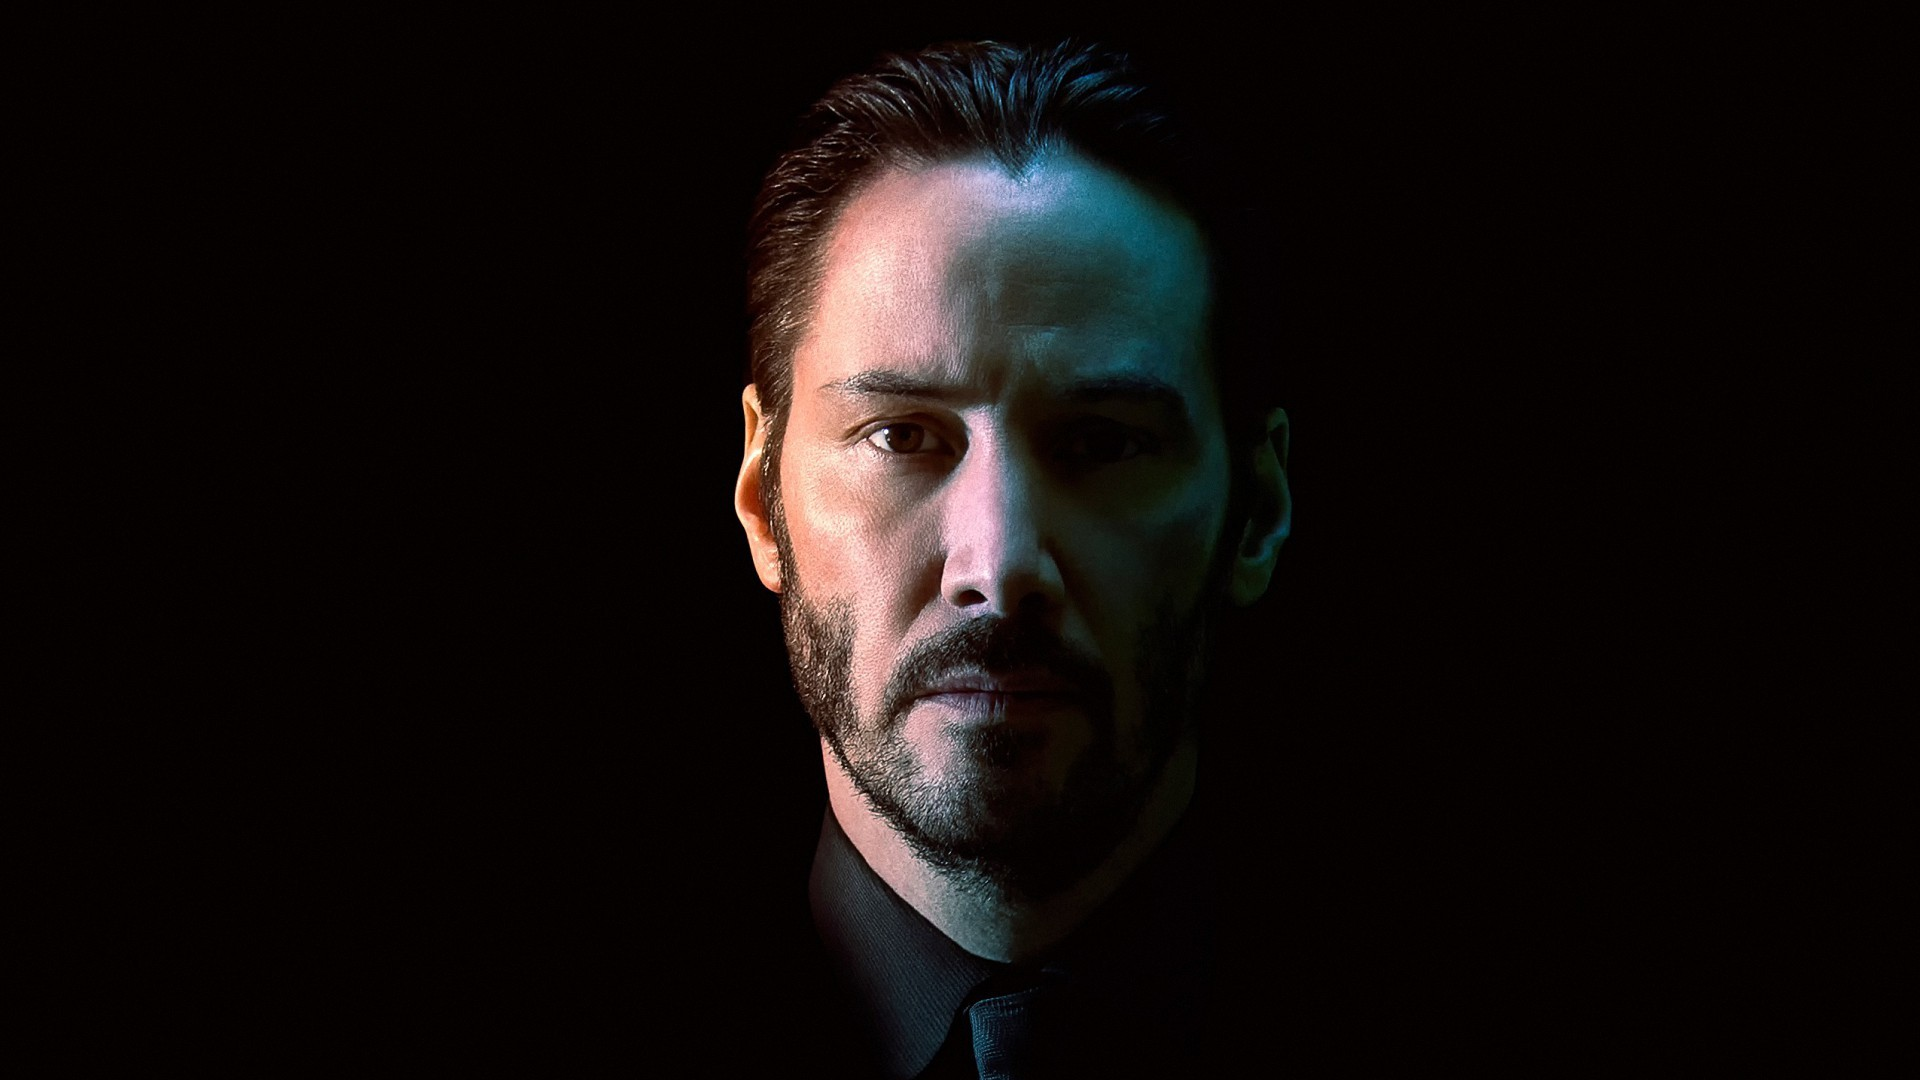 Res: 1920x1080,  actor man portrait keanu reeves wallpapers full HD 1080p desktop  backgrounds